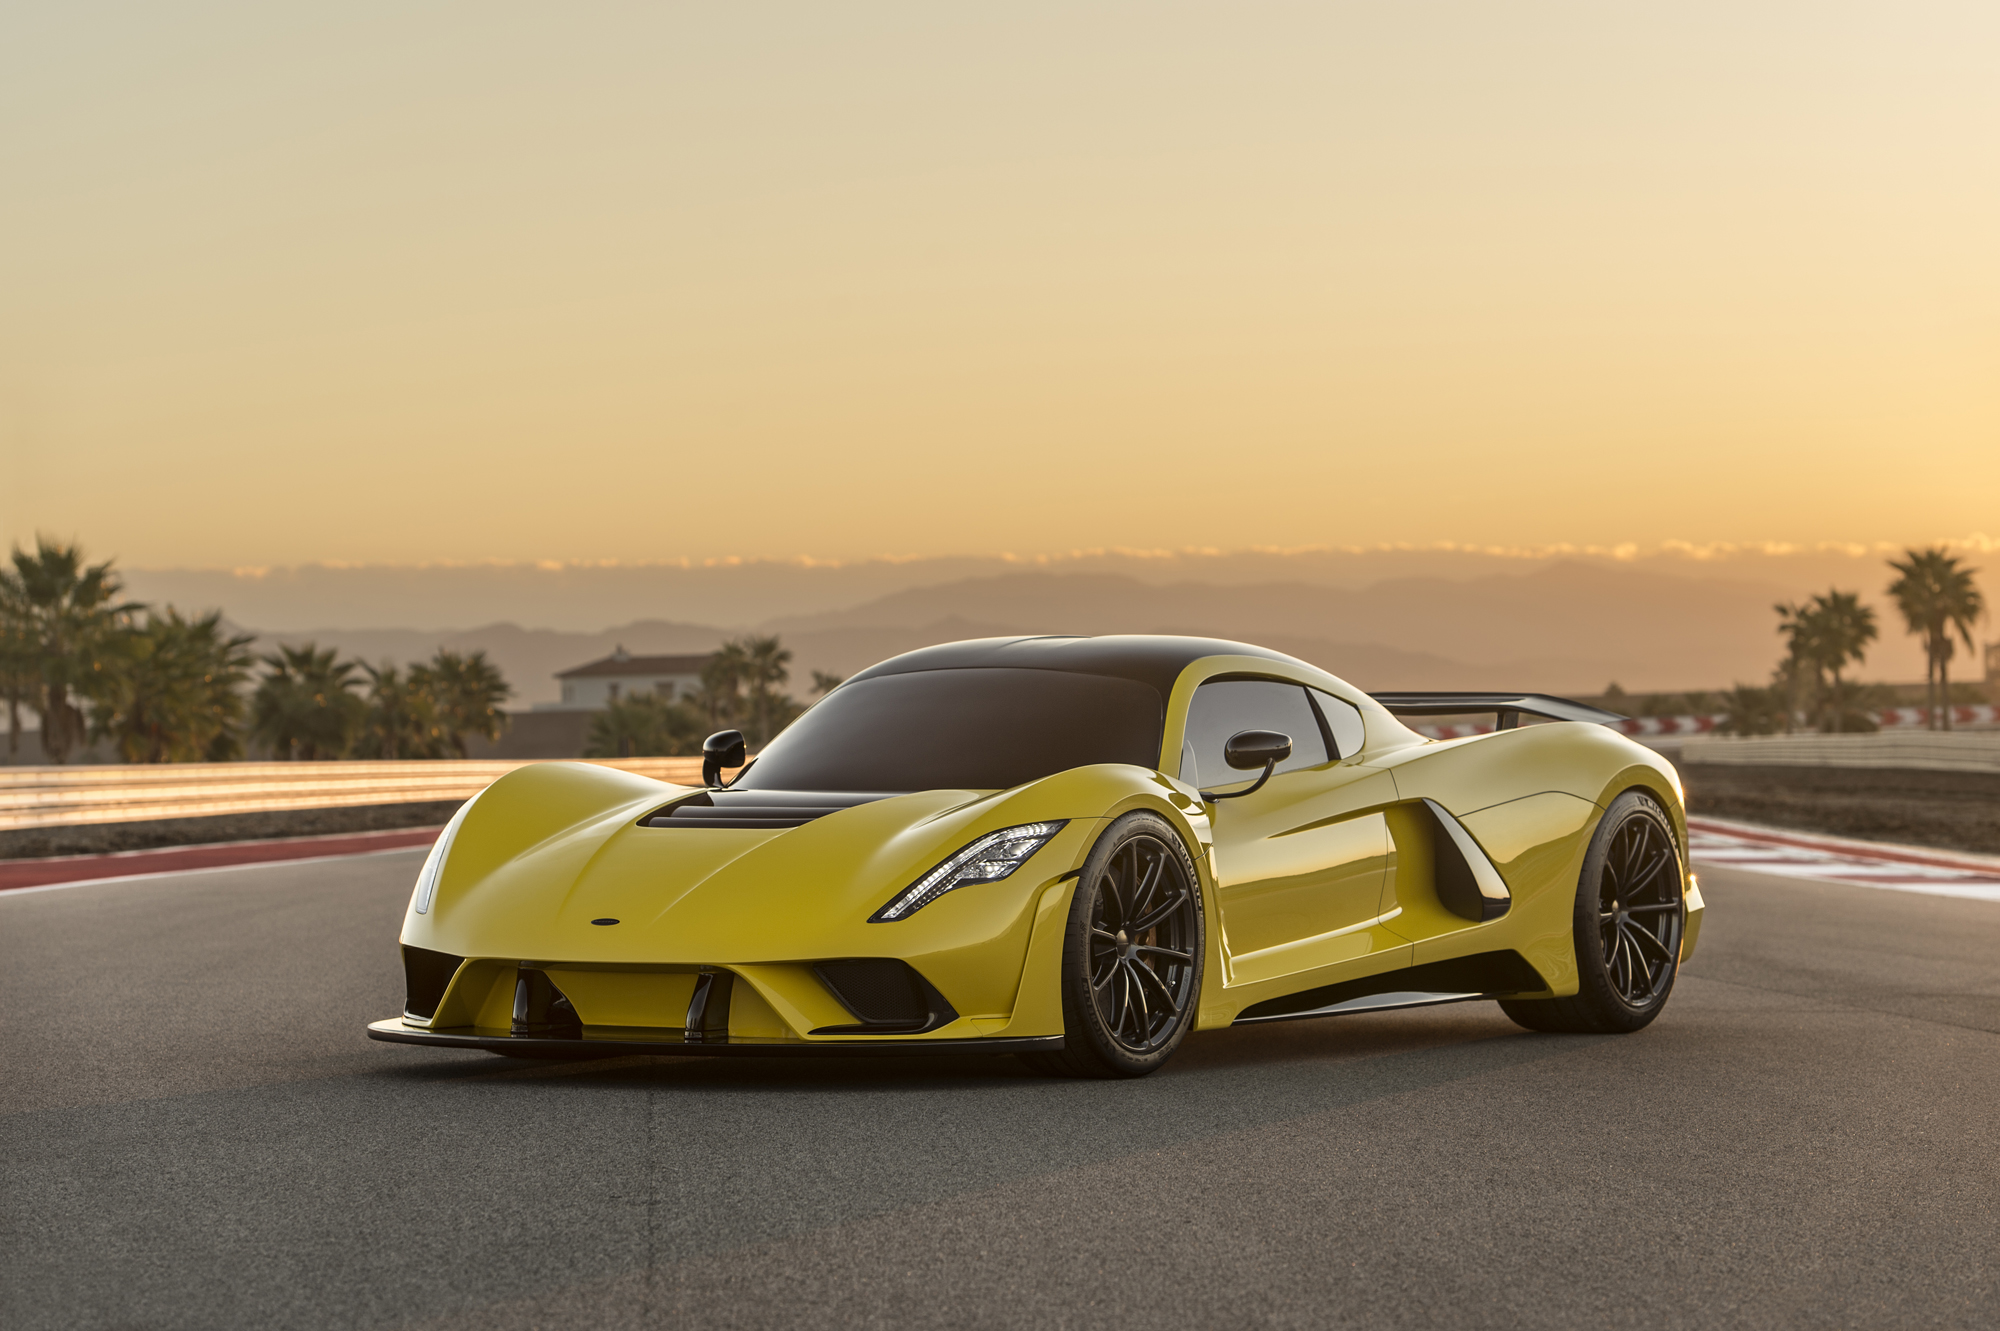 2019 Hennessey Venom F5 | Top Speed